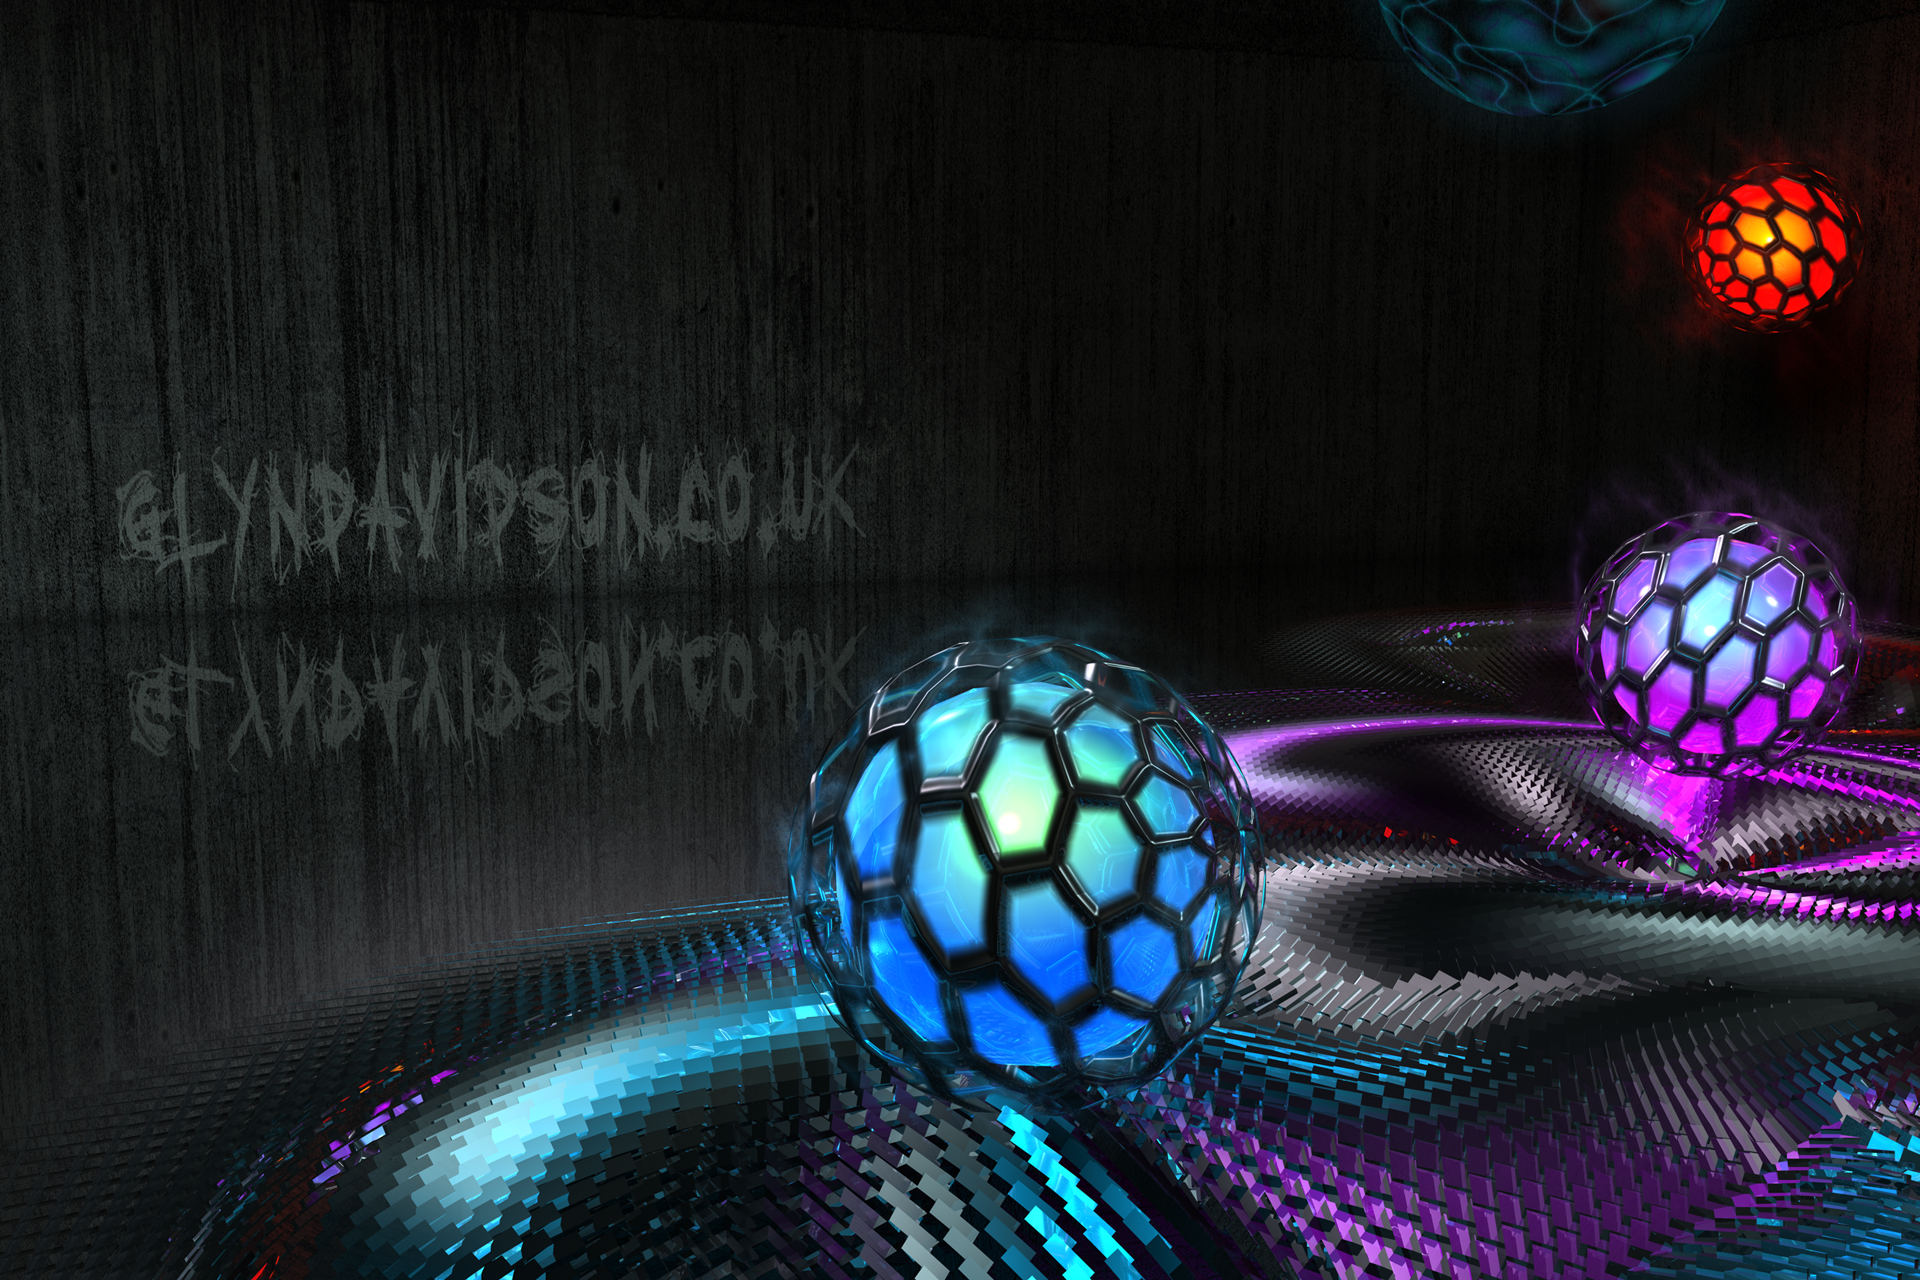 cinema 4d mograph wallpaper by therealglyph on deviantart